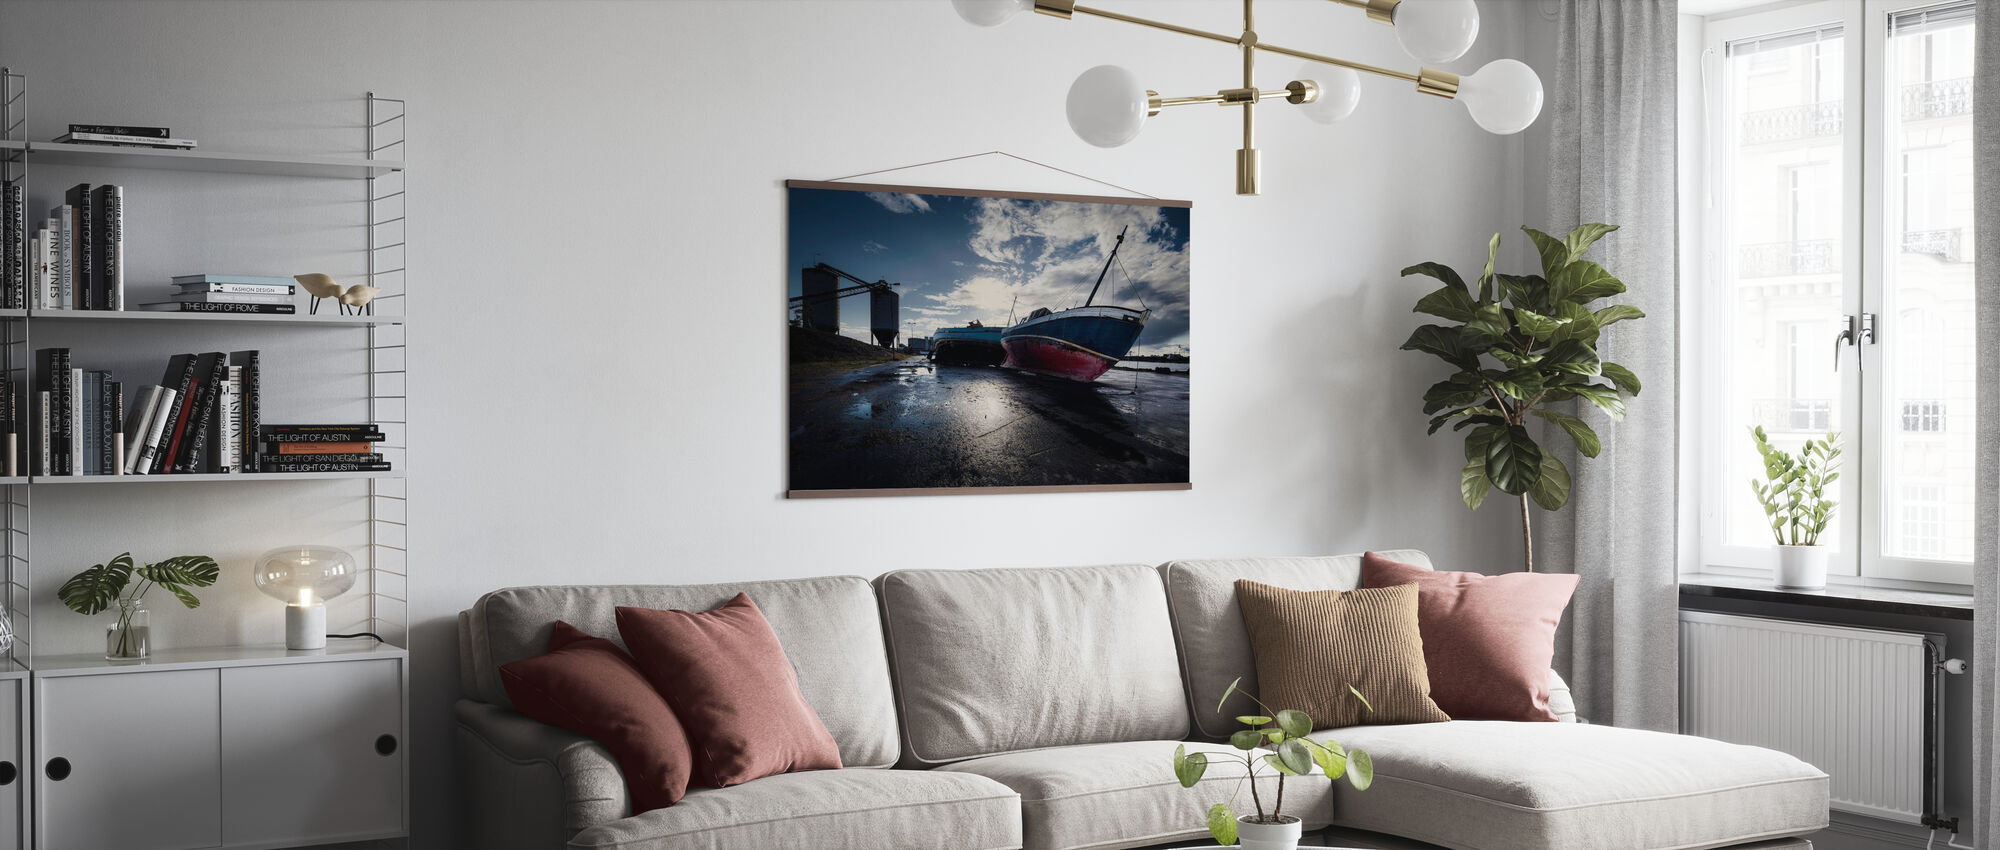 Stranded Boats in Malmö, Sweden - Poster - Living Room